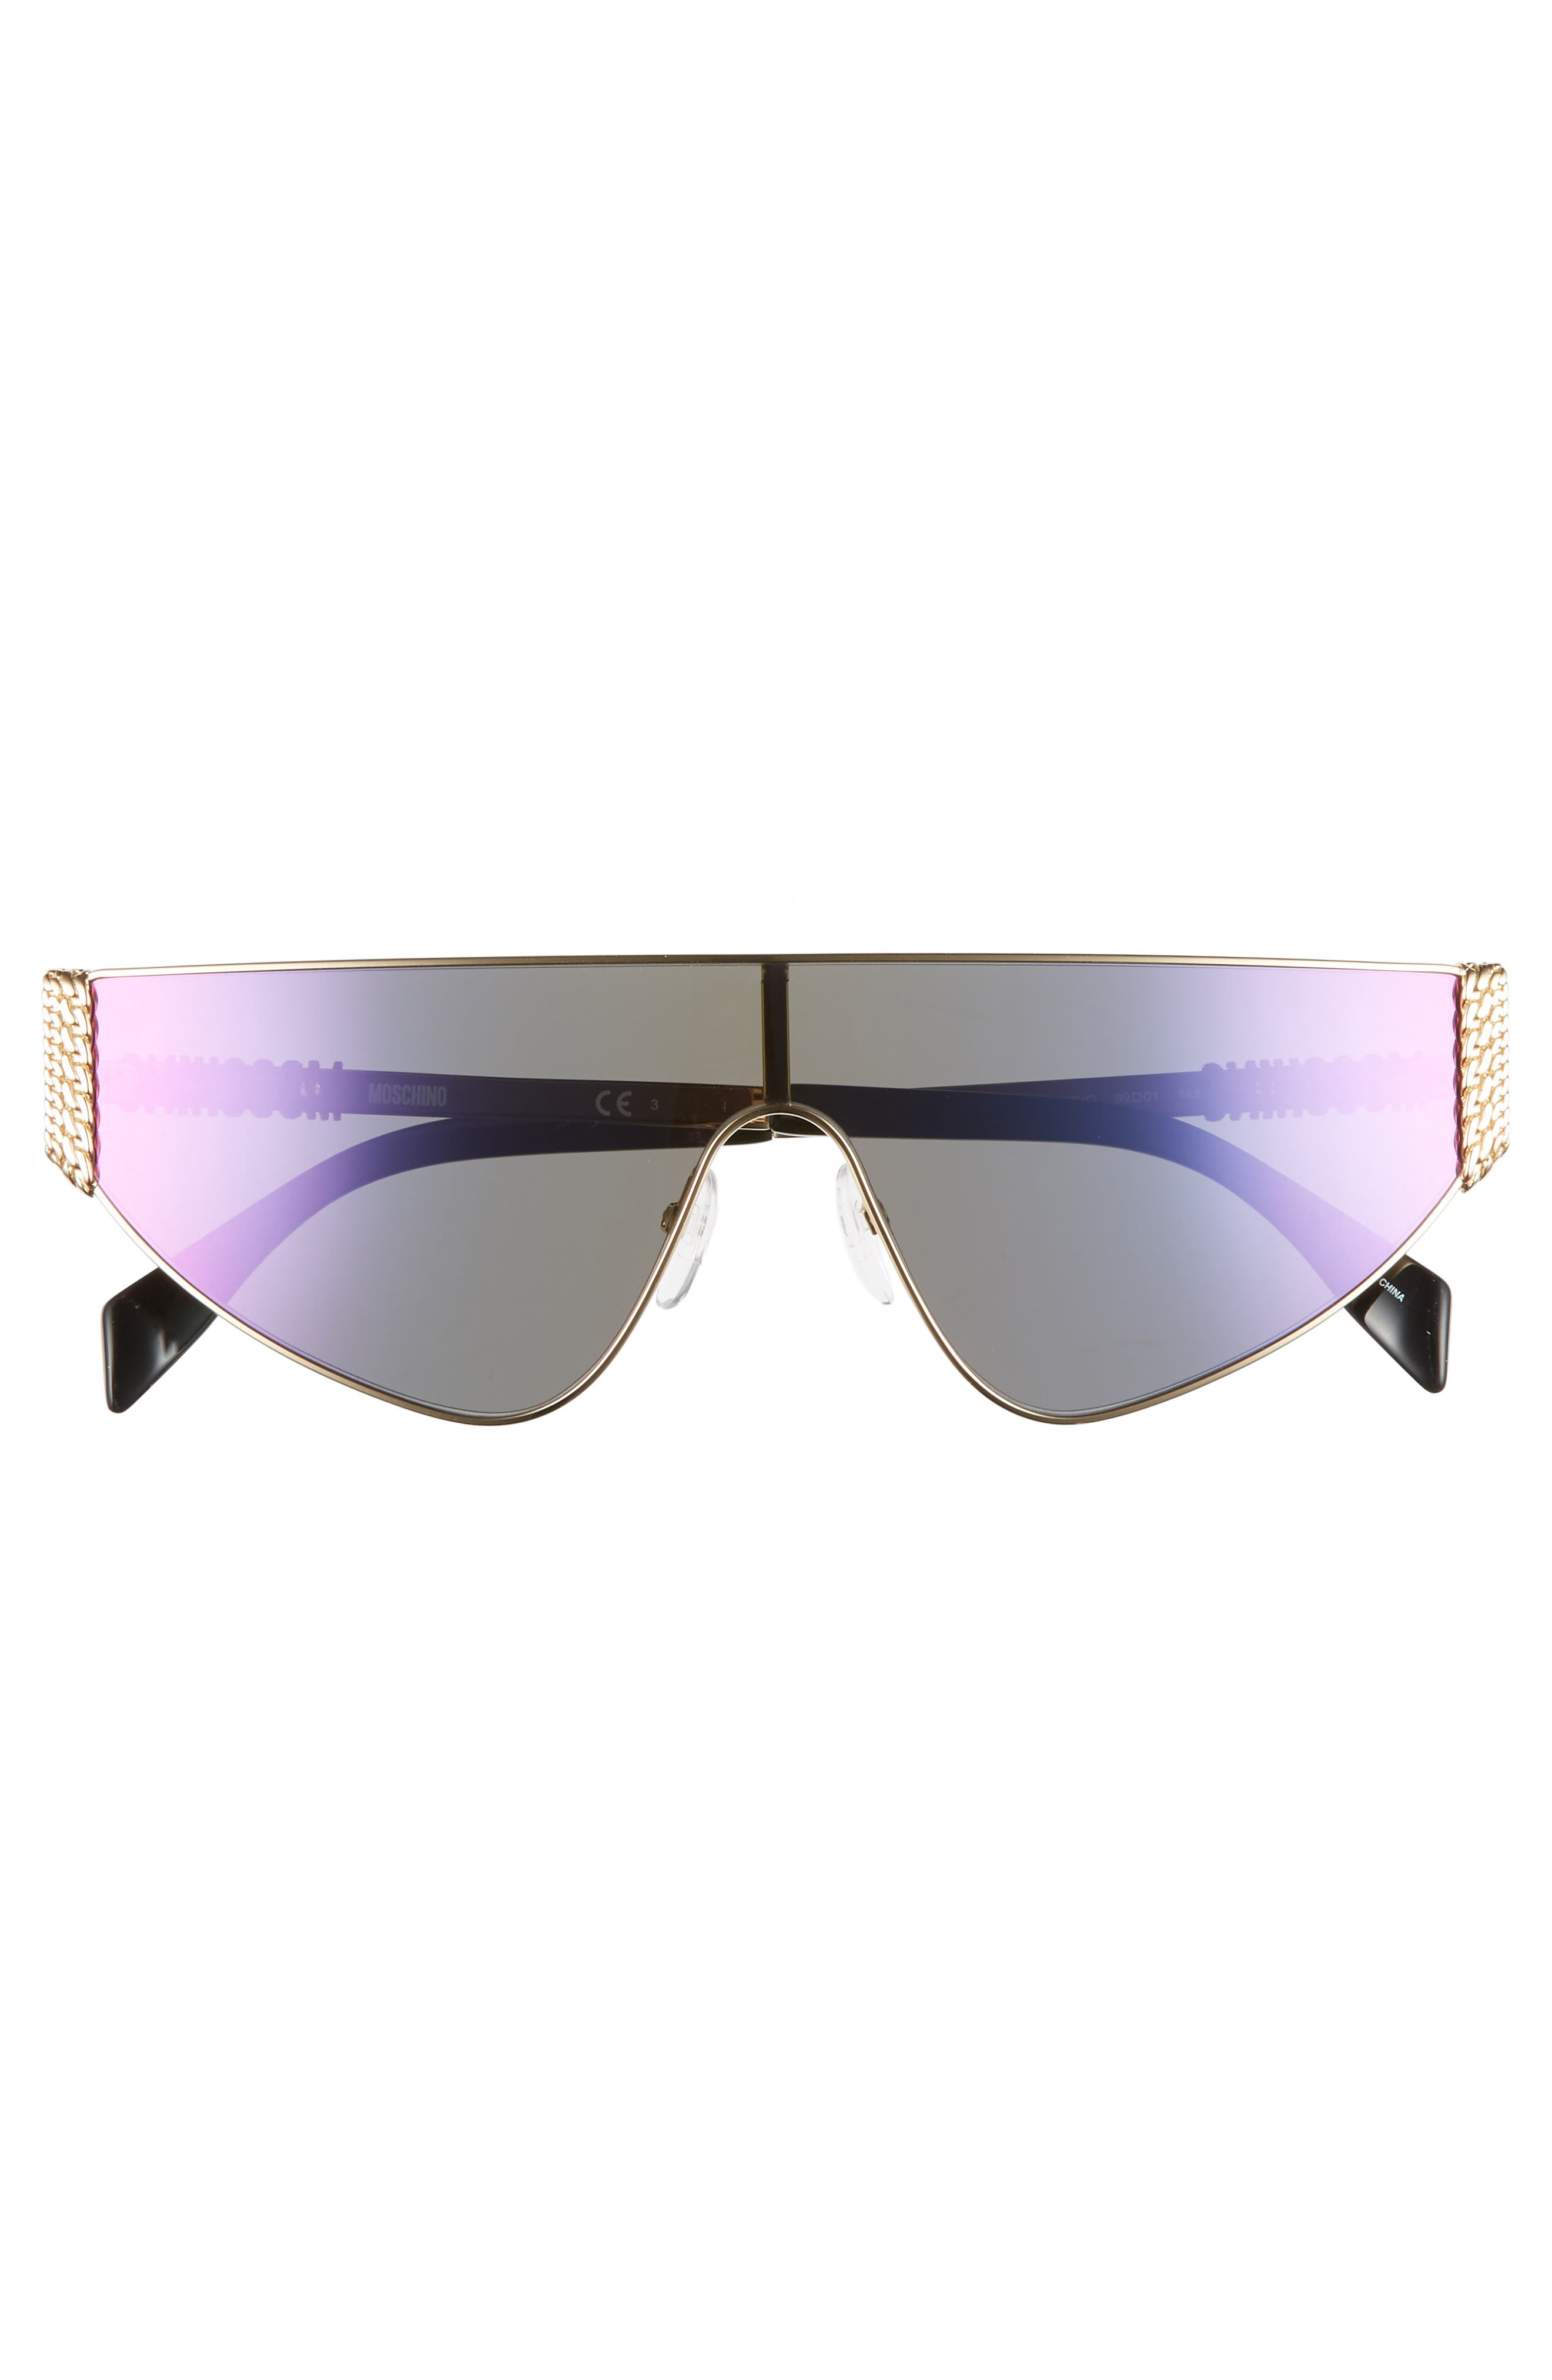 MOSCHINO, 99mm Shield Sunglasses, Alternate thumbnail 3, color, ROSE GOLD